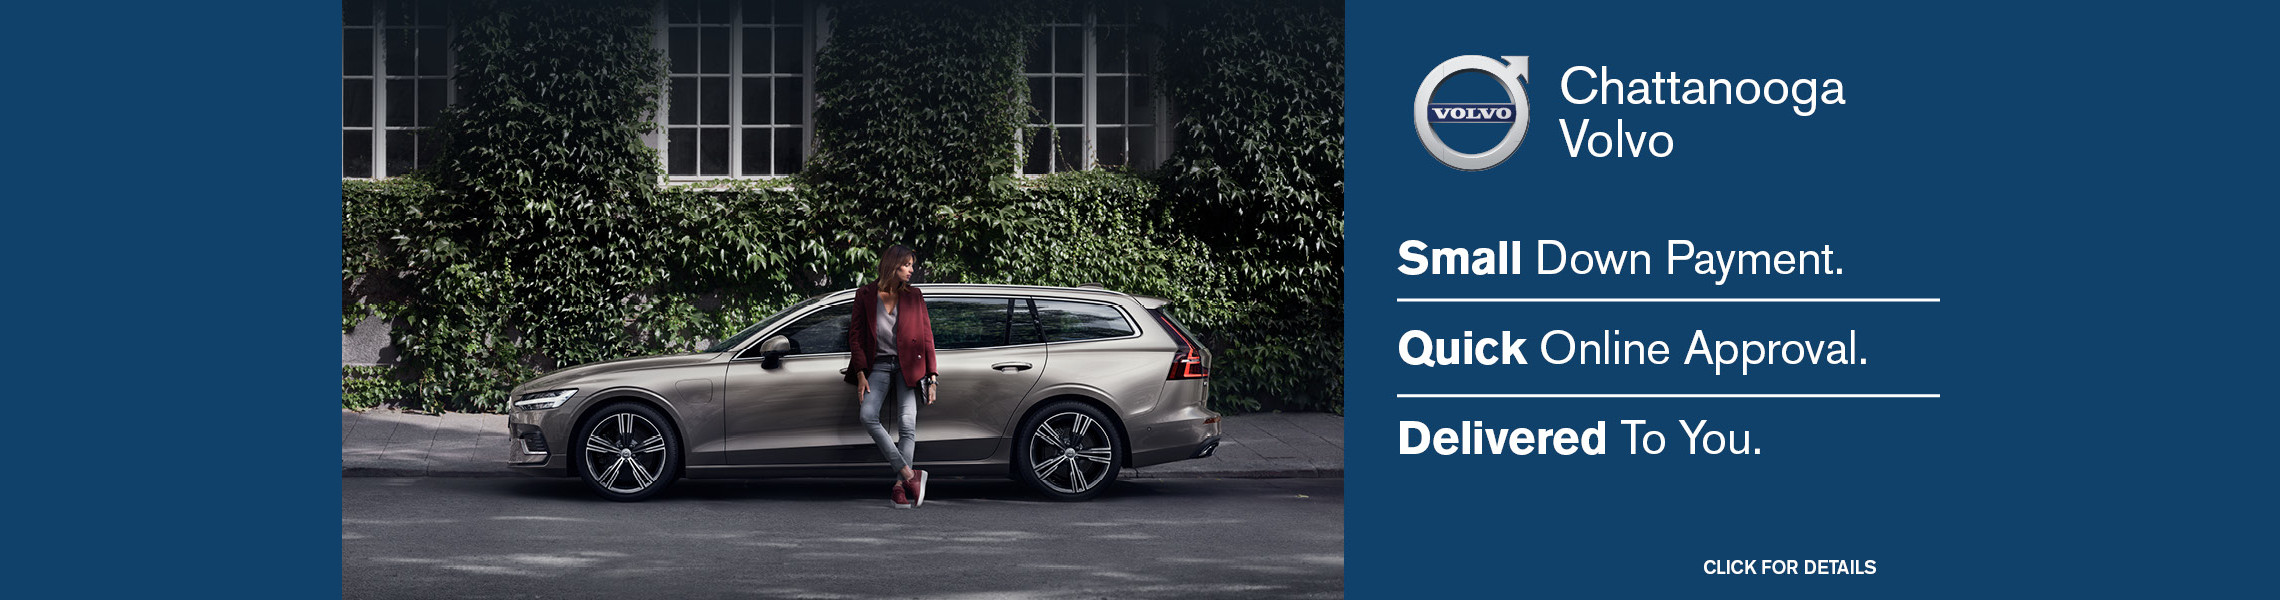 Volvo Cars of Chattanooga Delivery